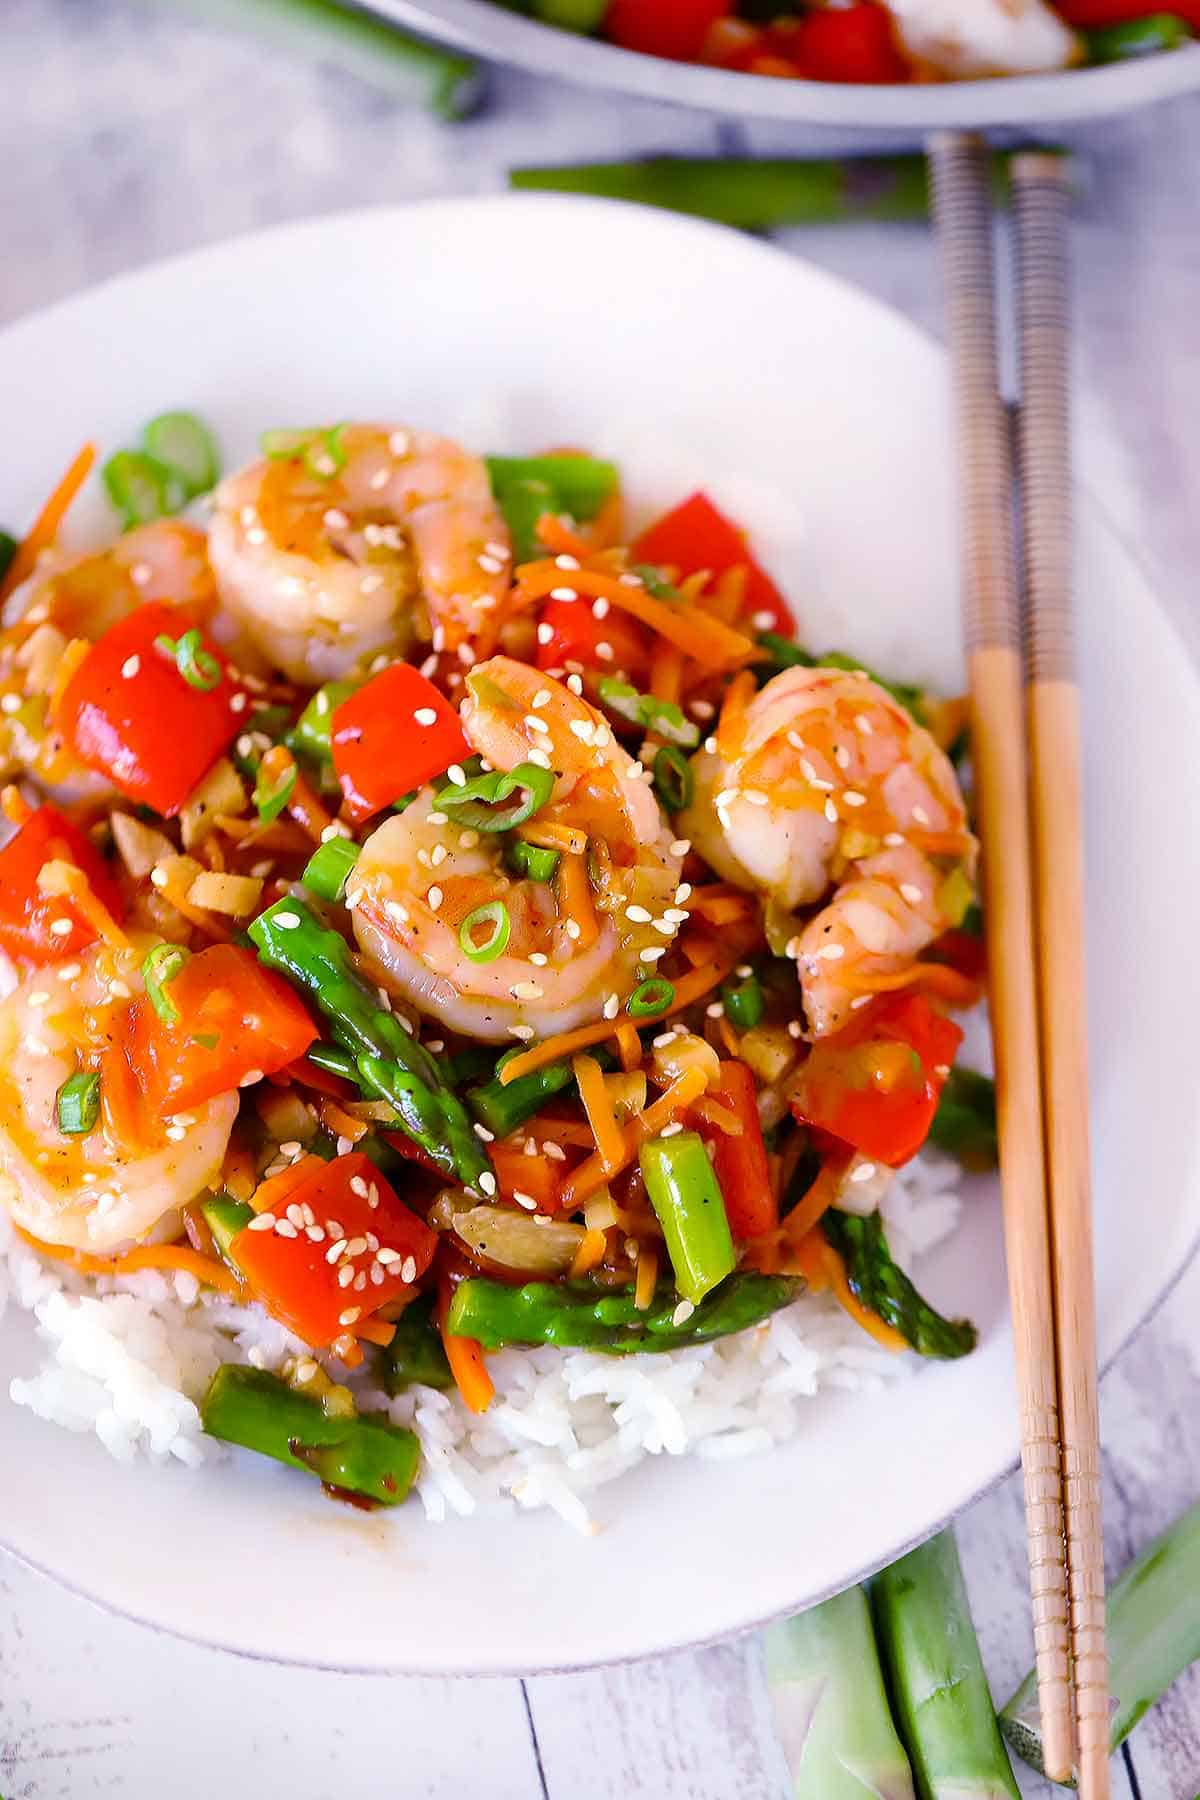 Close up photo of shrimp and vegetable stir fry on a white plate with chopsticks on the side.